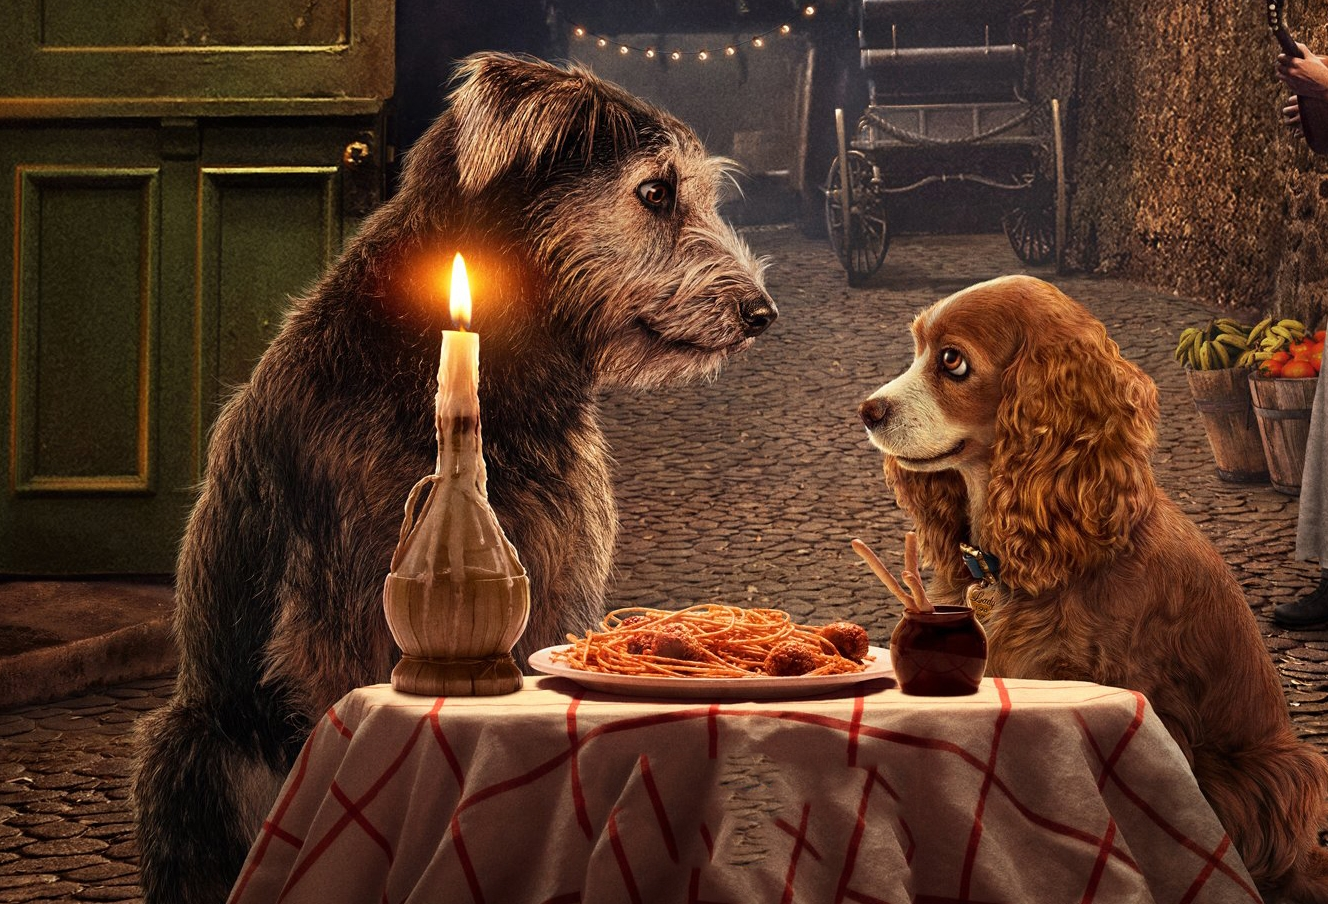 Movie Review - Lady & The Tramp (2019)